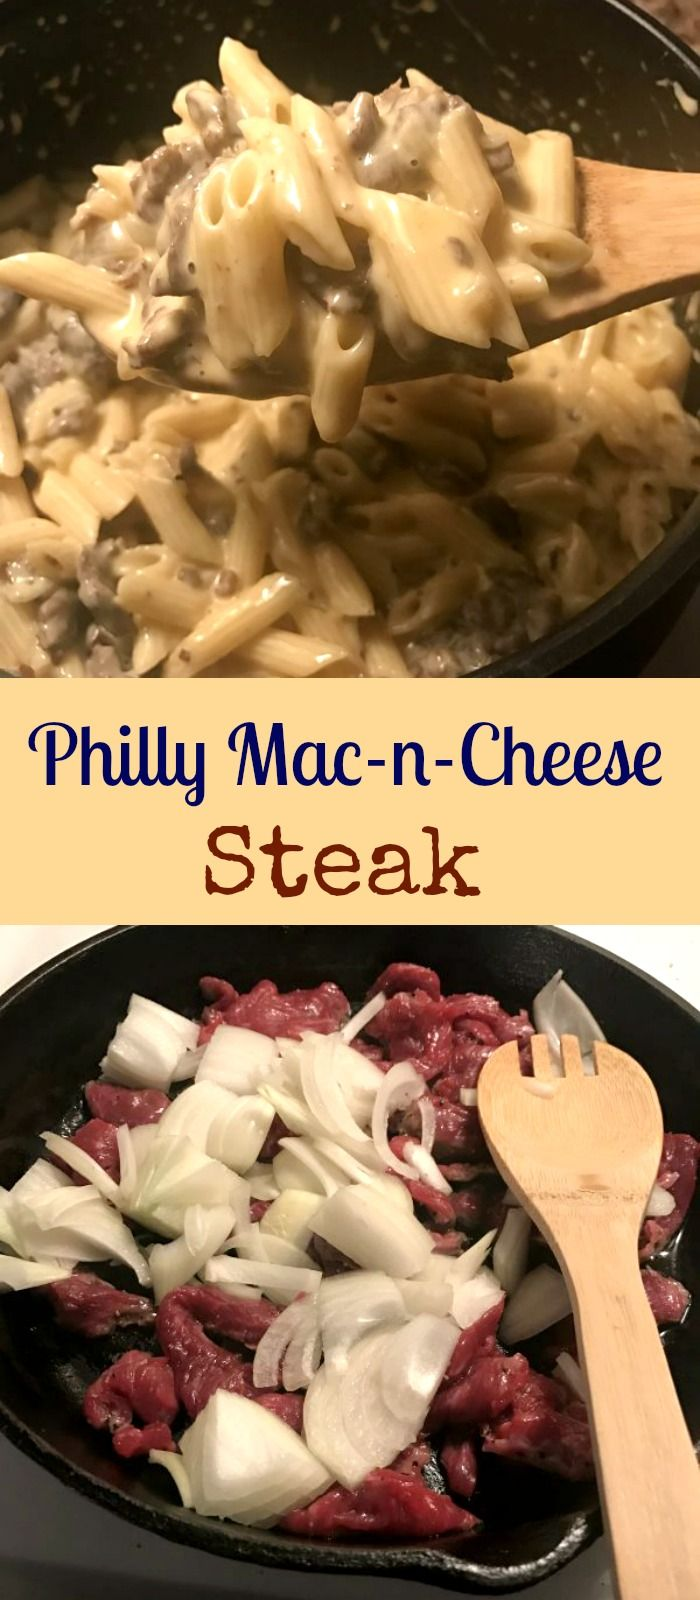 Philly Cheese Steaks are made using rib-eye or top round, but you can use other cuts of beef as well.  I usually choose a thick cut steak with good marbling and color.  If you toss it in the freezer for 20 or 30 minutes it can be much easier to slice thinner pieces.  #Pasta #Cheese #Recipe #Food #Steak irubmymeat.com